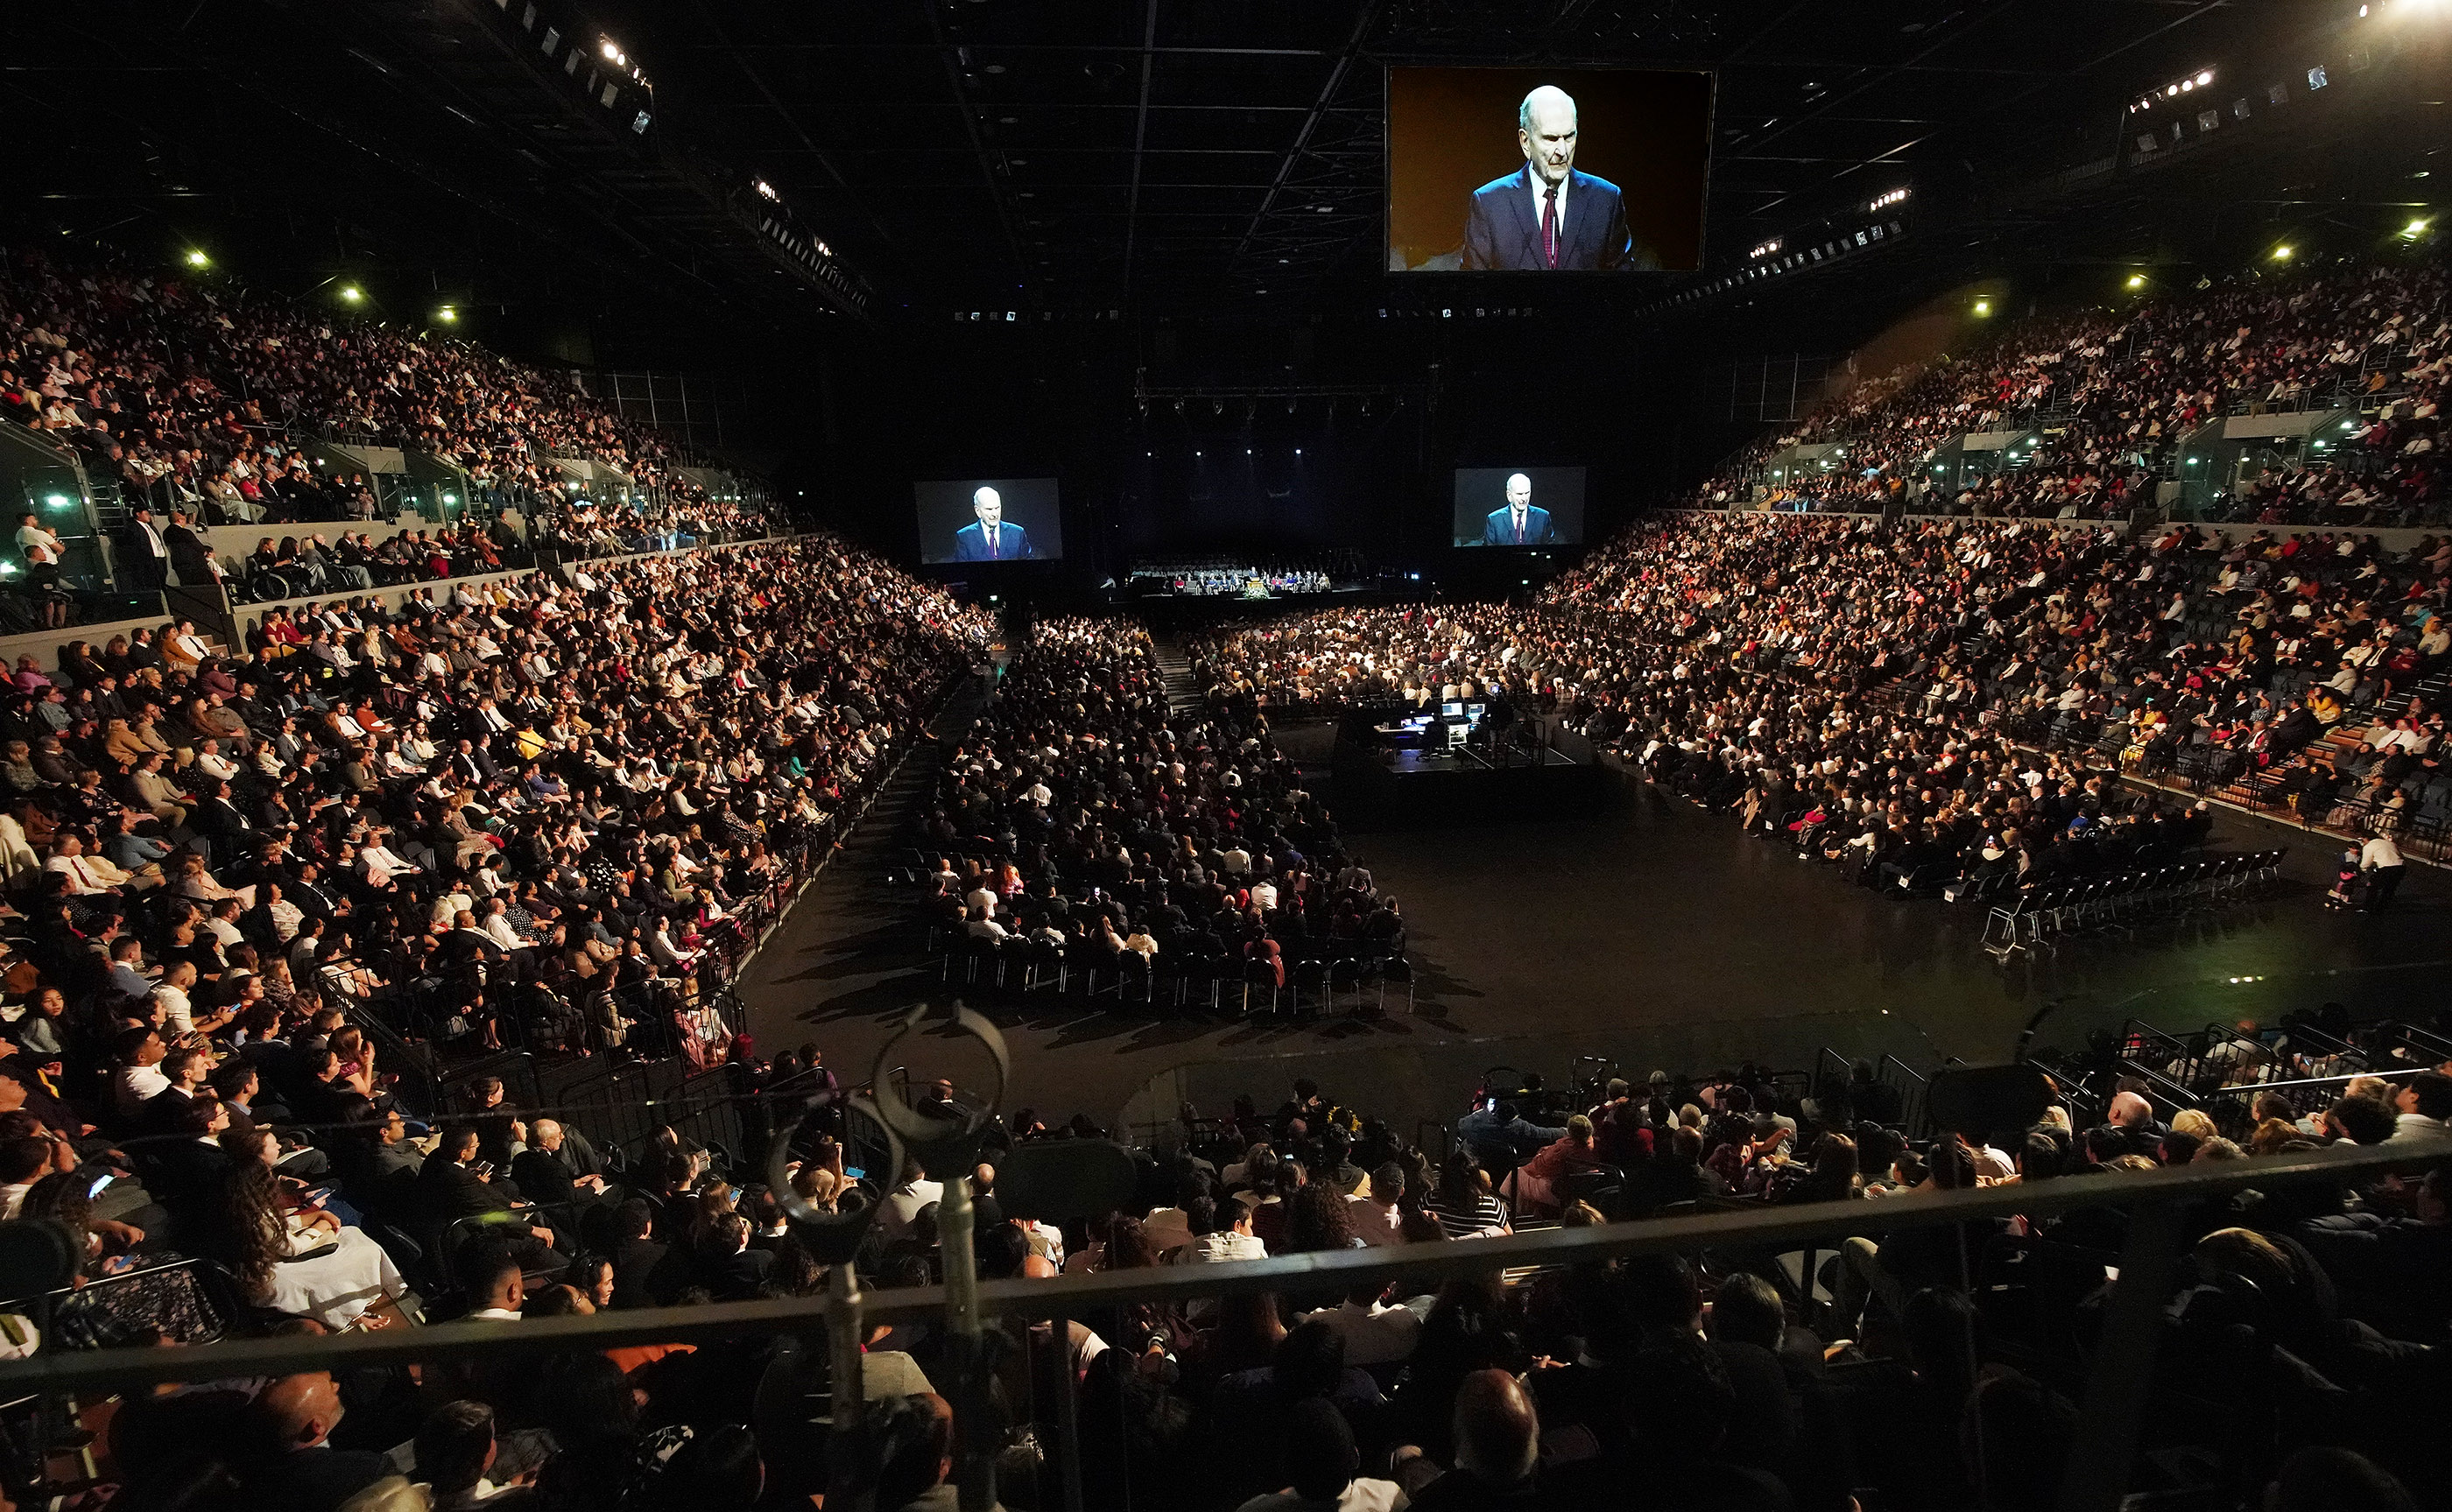 President Russell M. Nelson of The Church of Jesus Christ of Latter-day Saints speaks during a devotional at Spark Arena in Auckland, New Zealand, on May 21, 2019.